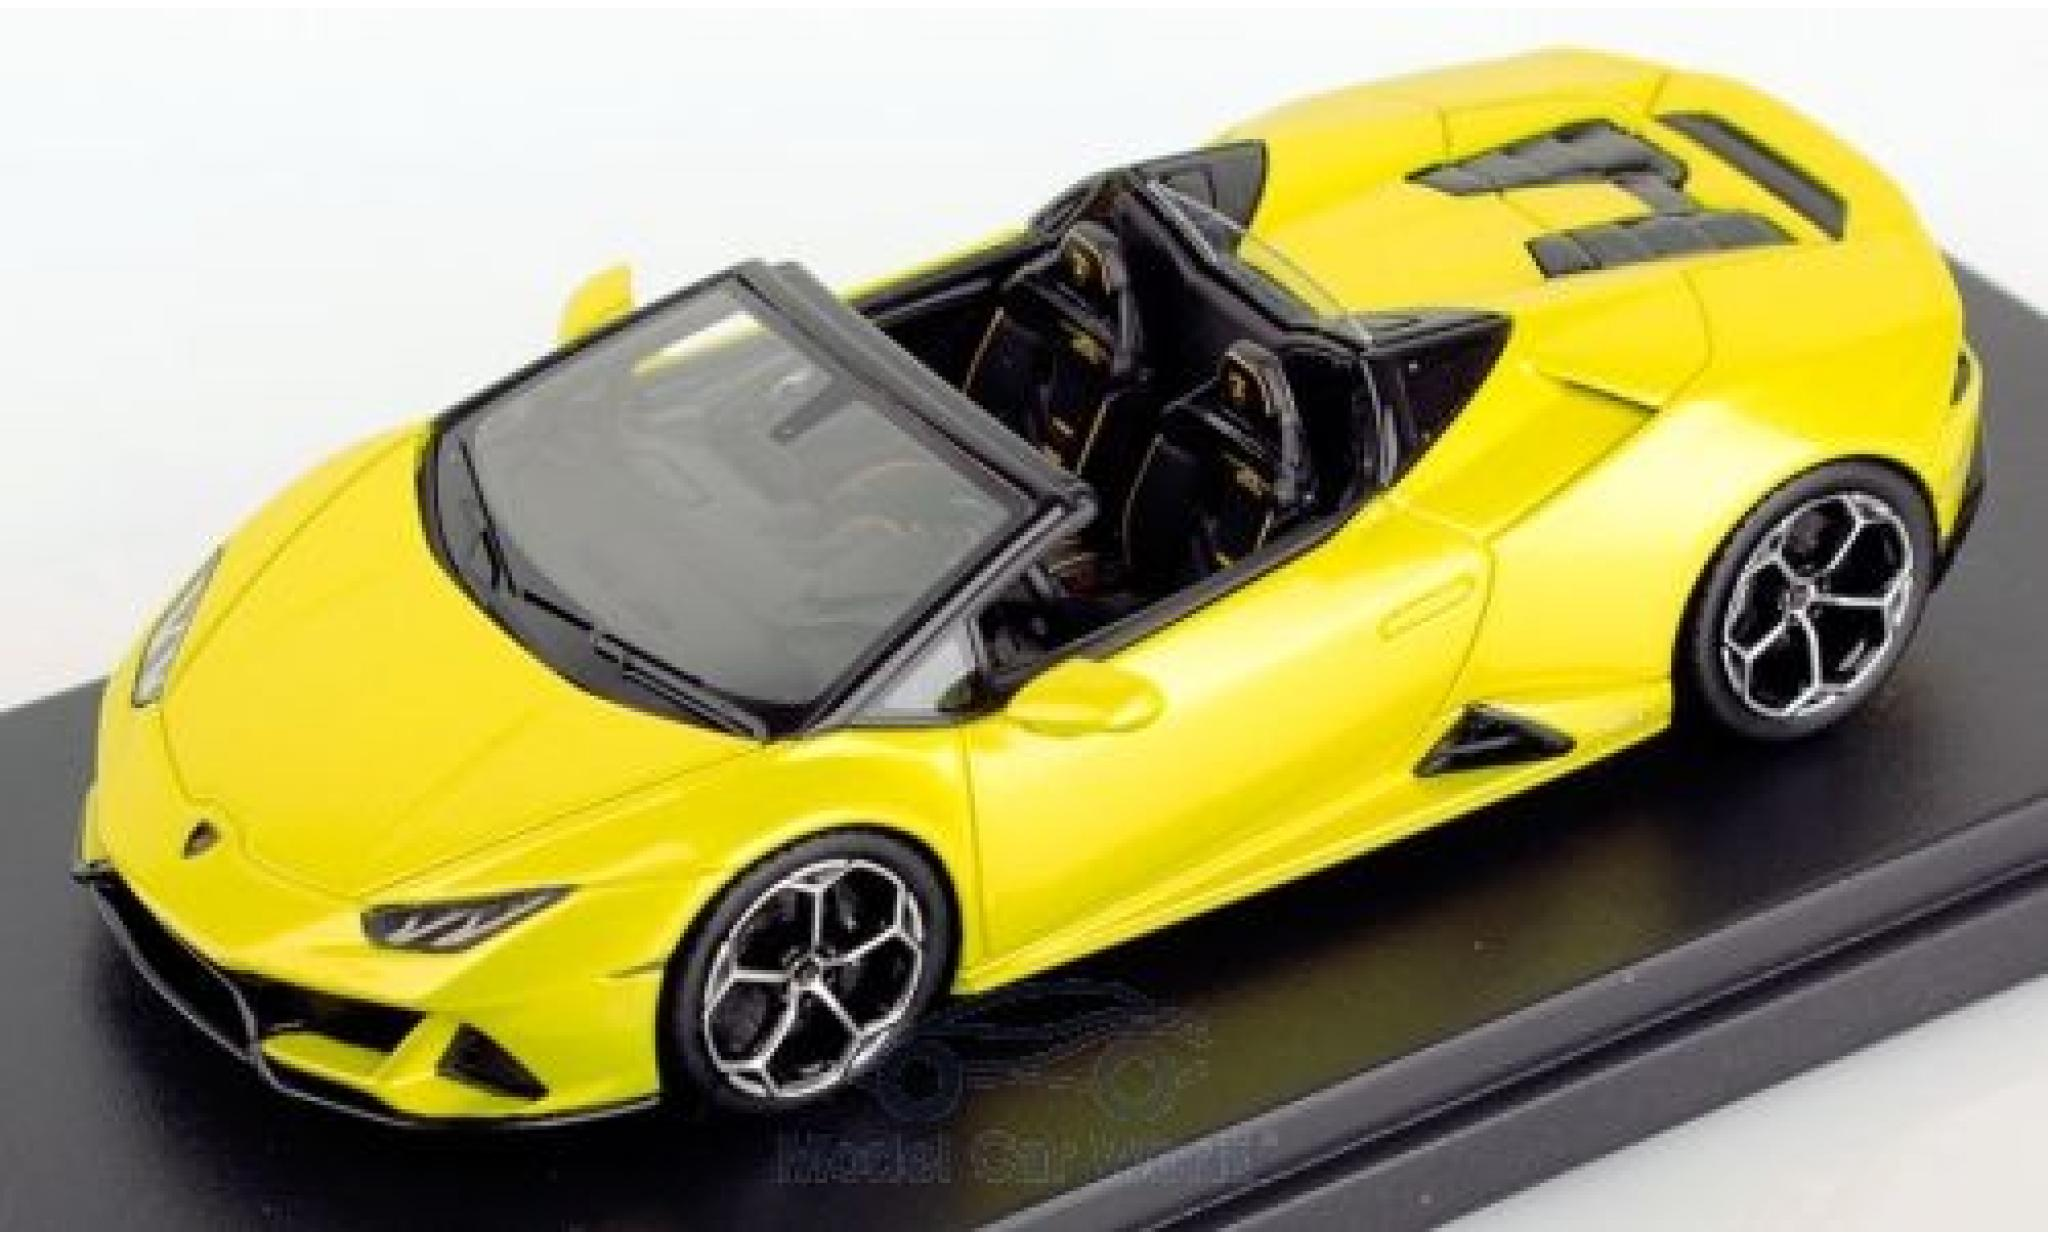 Lamborghini Huracan 1/43 Look Smart Evo Spyder metallise yellow 2019